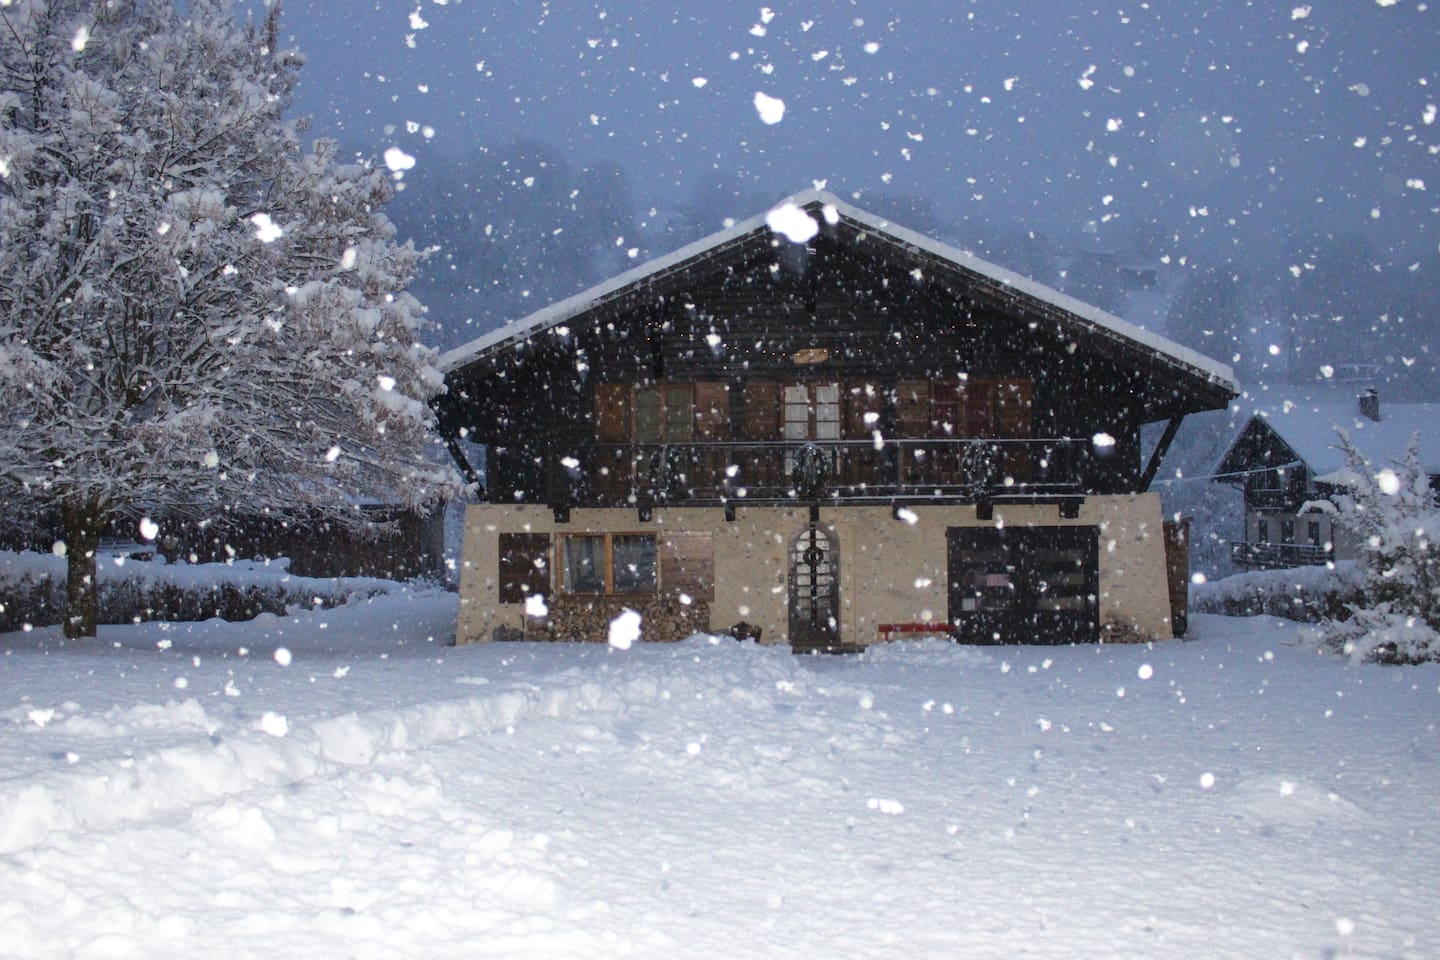 Chalet Nicole snug in a snow storm.